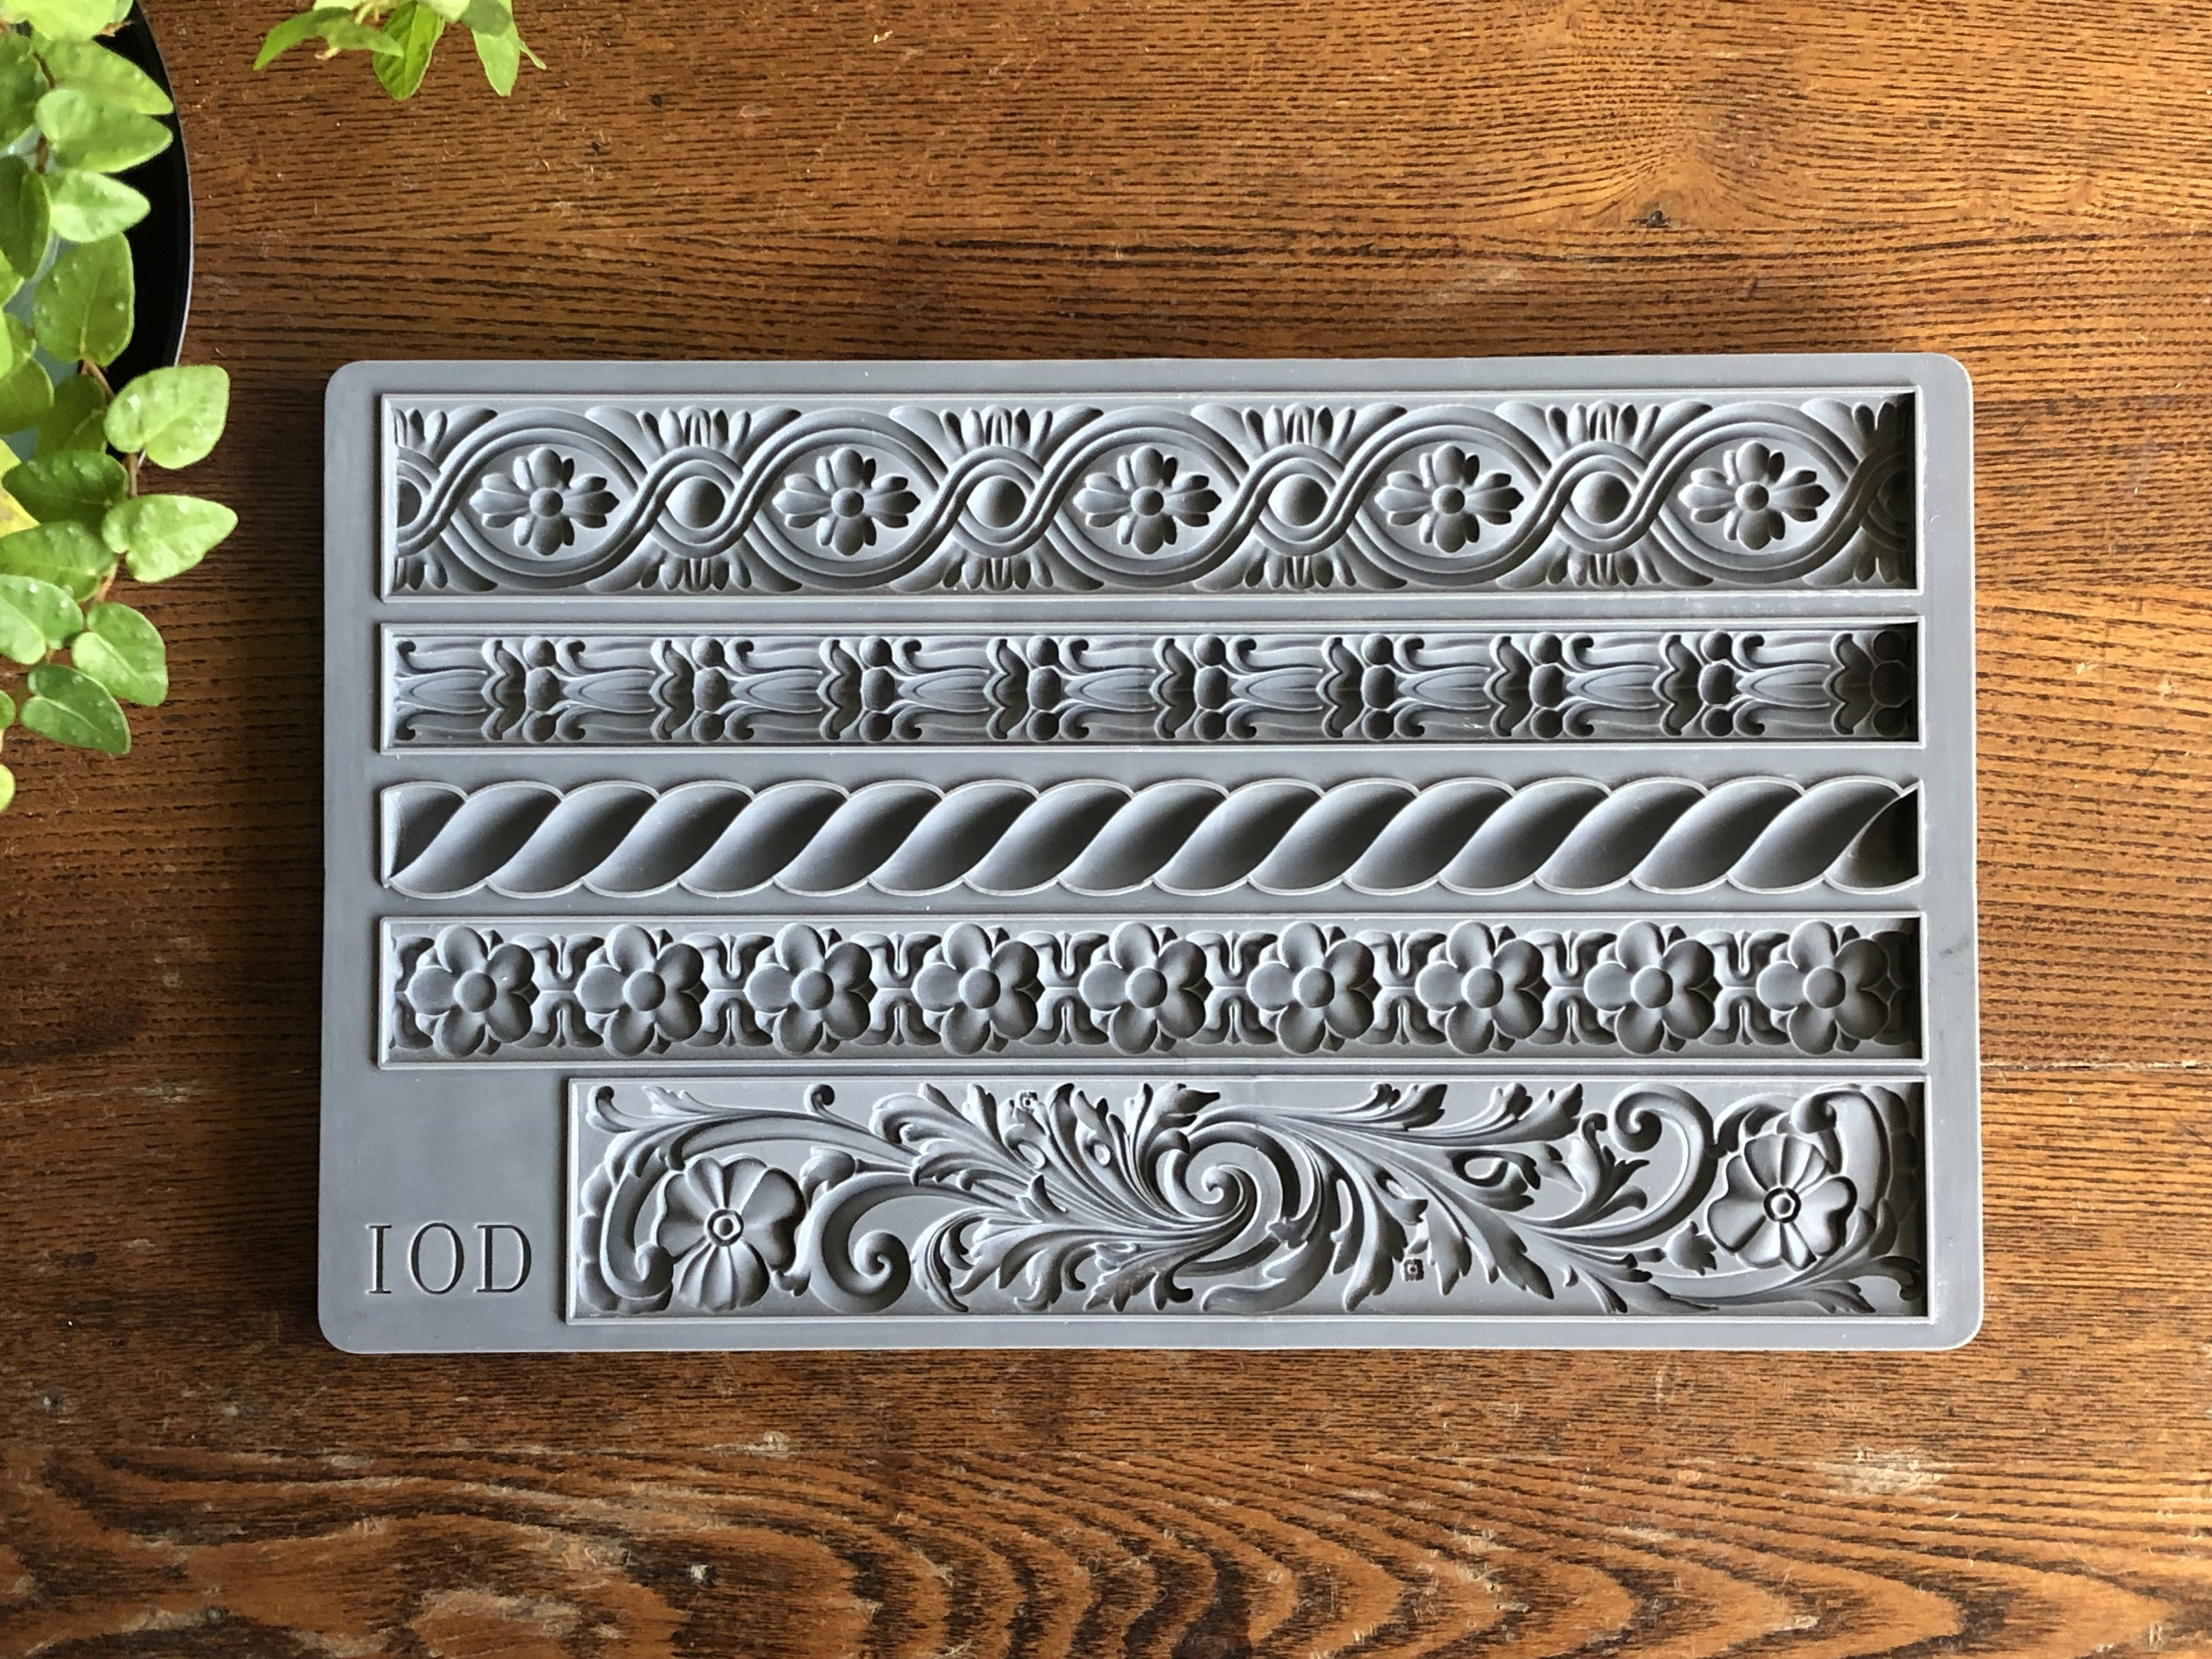 Have fun adding texture to your projects with these Iron Orchid Designs Decor Moulds -Trimmings1 | www.raggedy-bits.com | #raggedybits #IOD #Trimmings1 #texture #DIY #Moulds